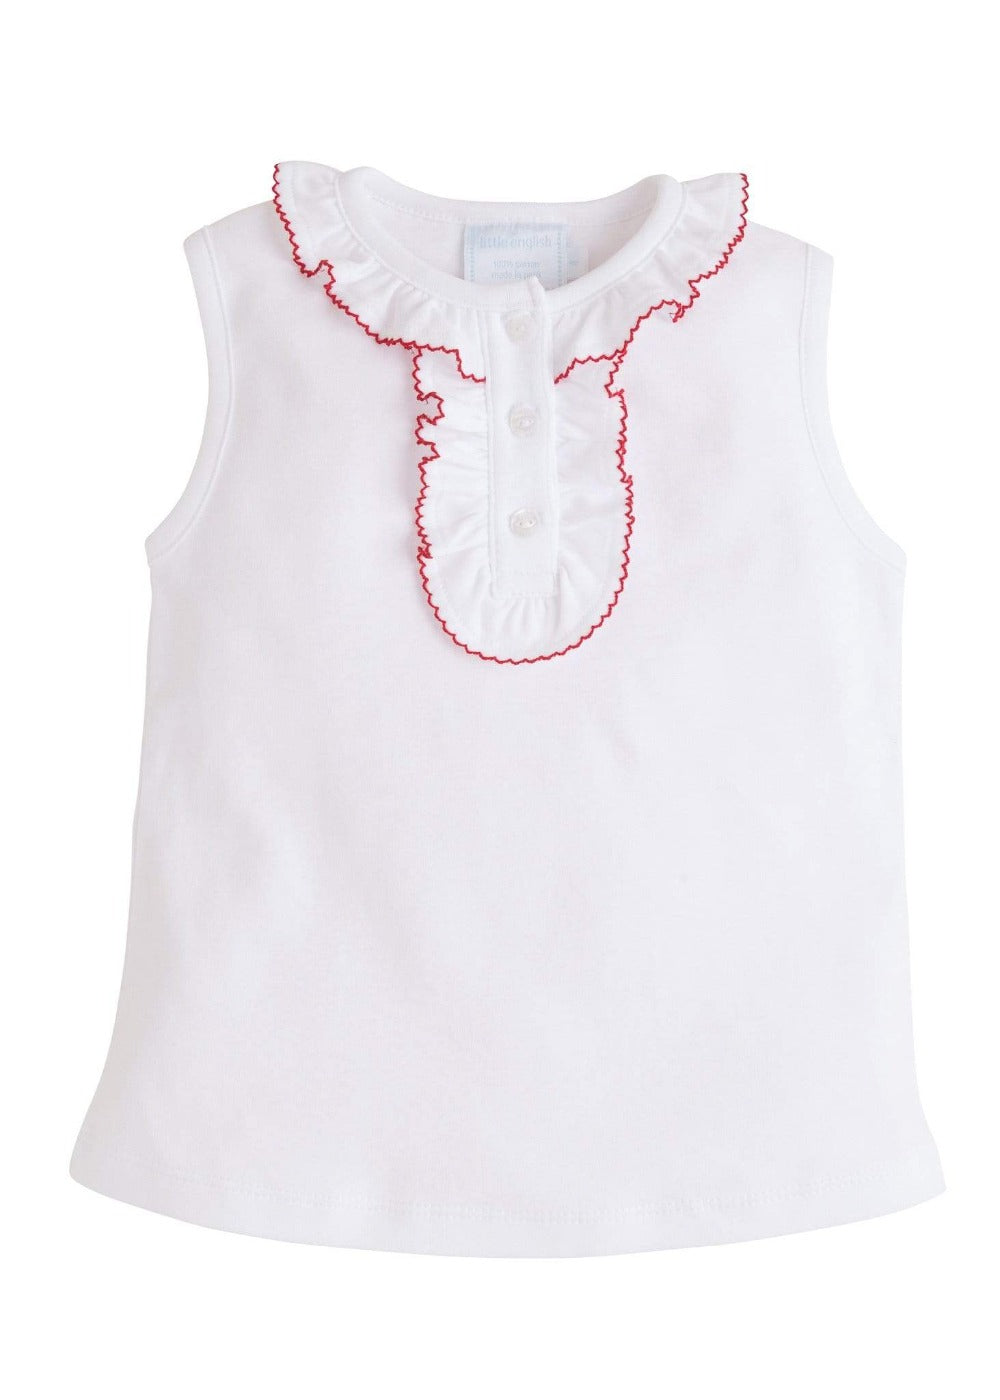 Ruffled Henley - Red, Little English, classic children's clothing, preppy children's clothing, traditional children's clothing, classic baby clothing, traditional baby clothing